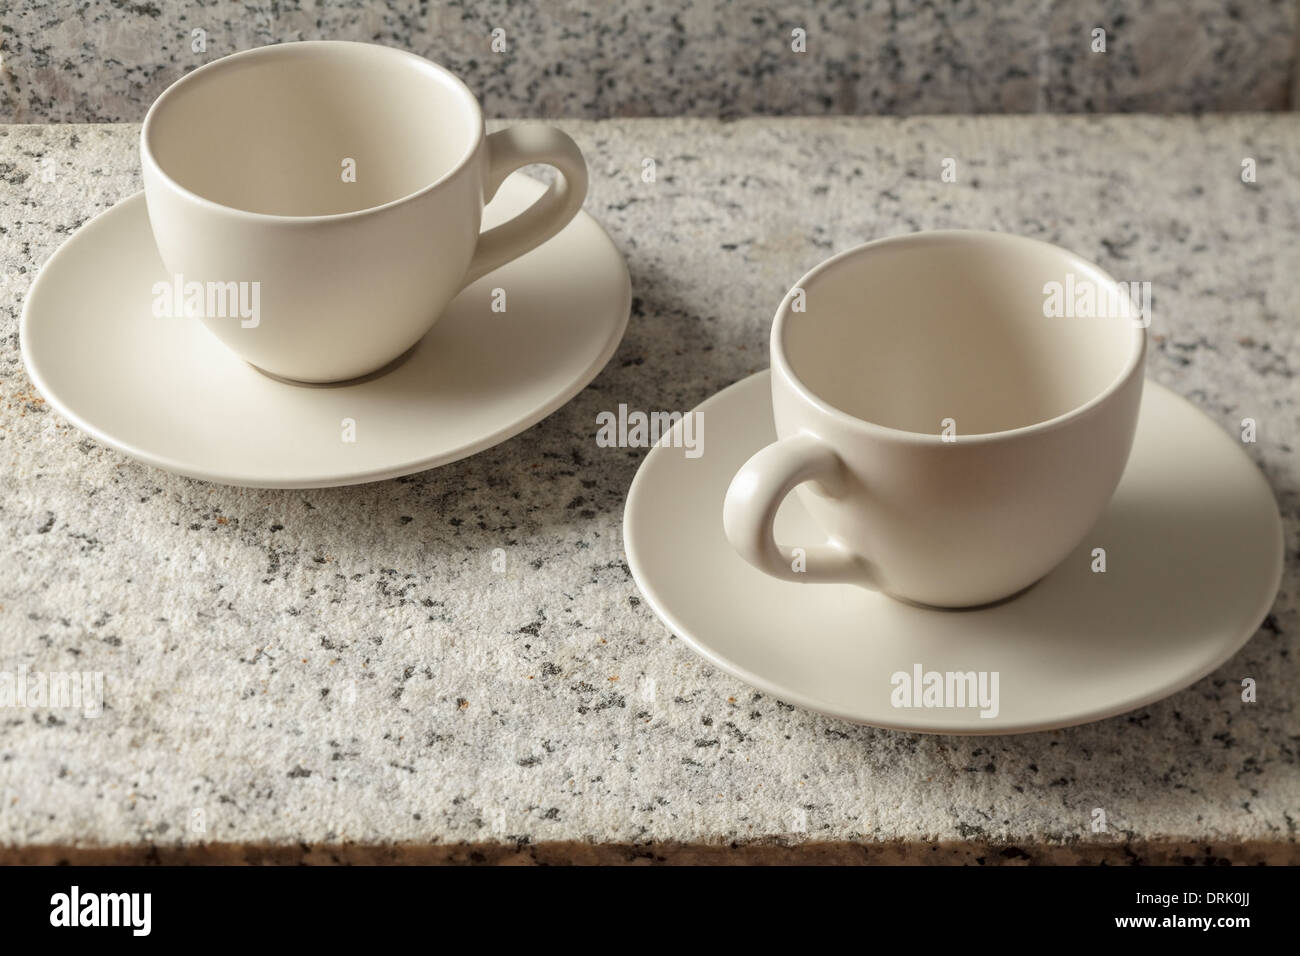 Two coffee cups on rough marble surface - Stock Image